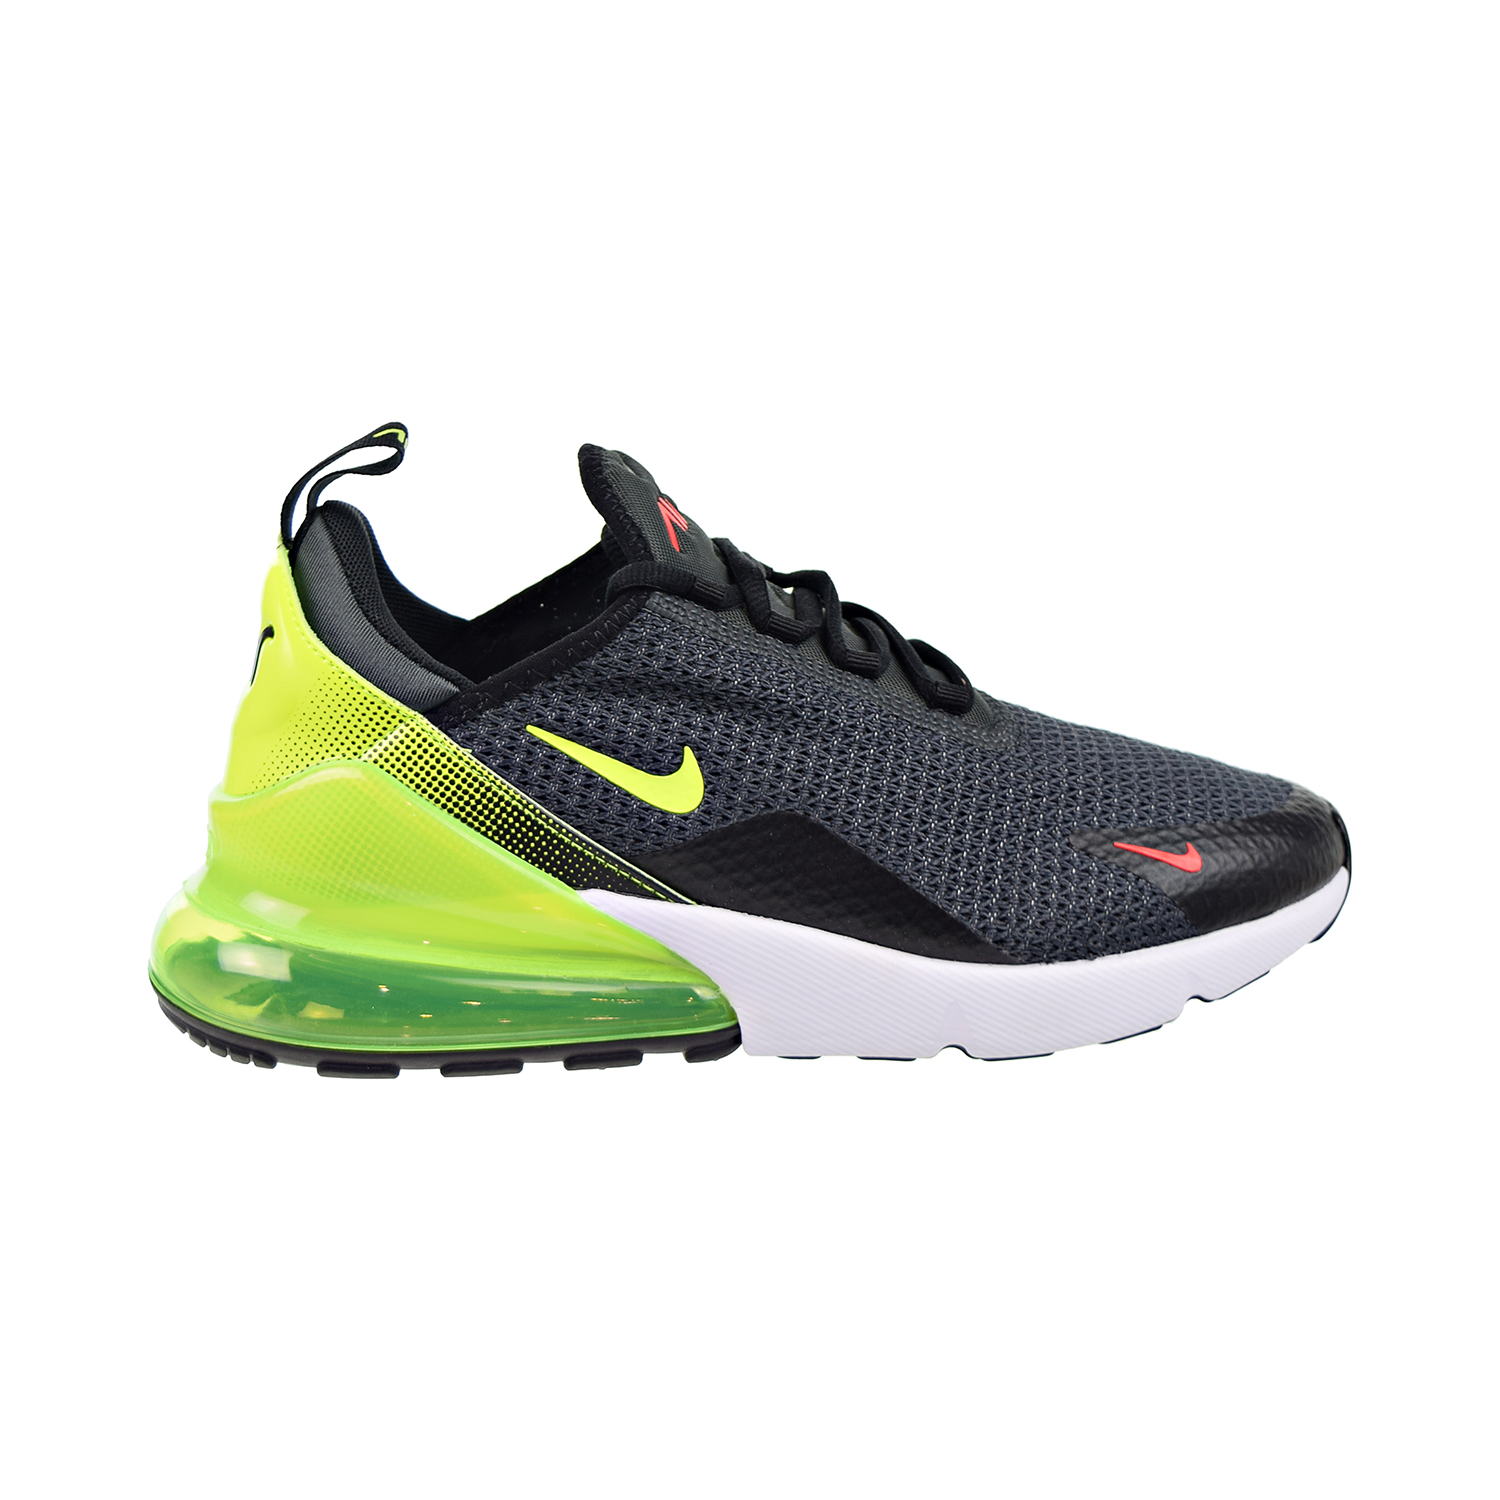 Details about Nike Air Max 270 SE Mens Shoes AnthraciteVoltBlack AQ9164 005